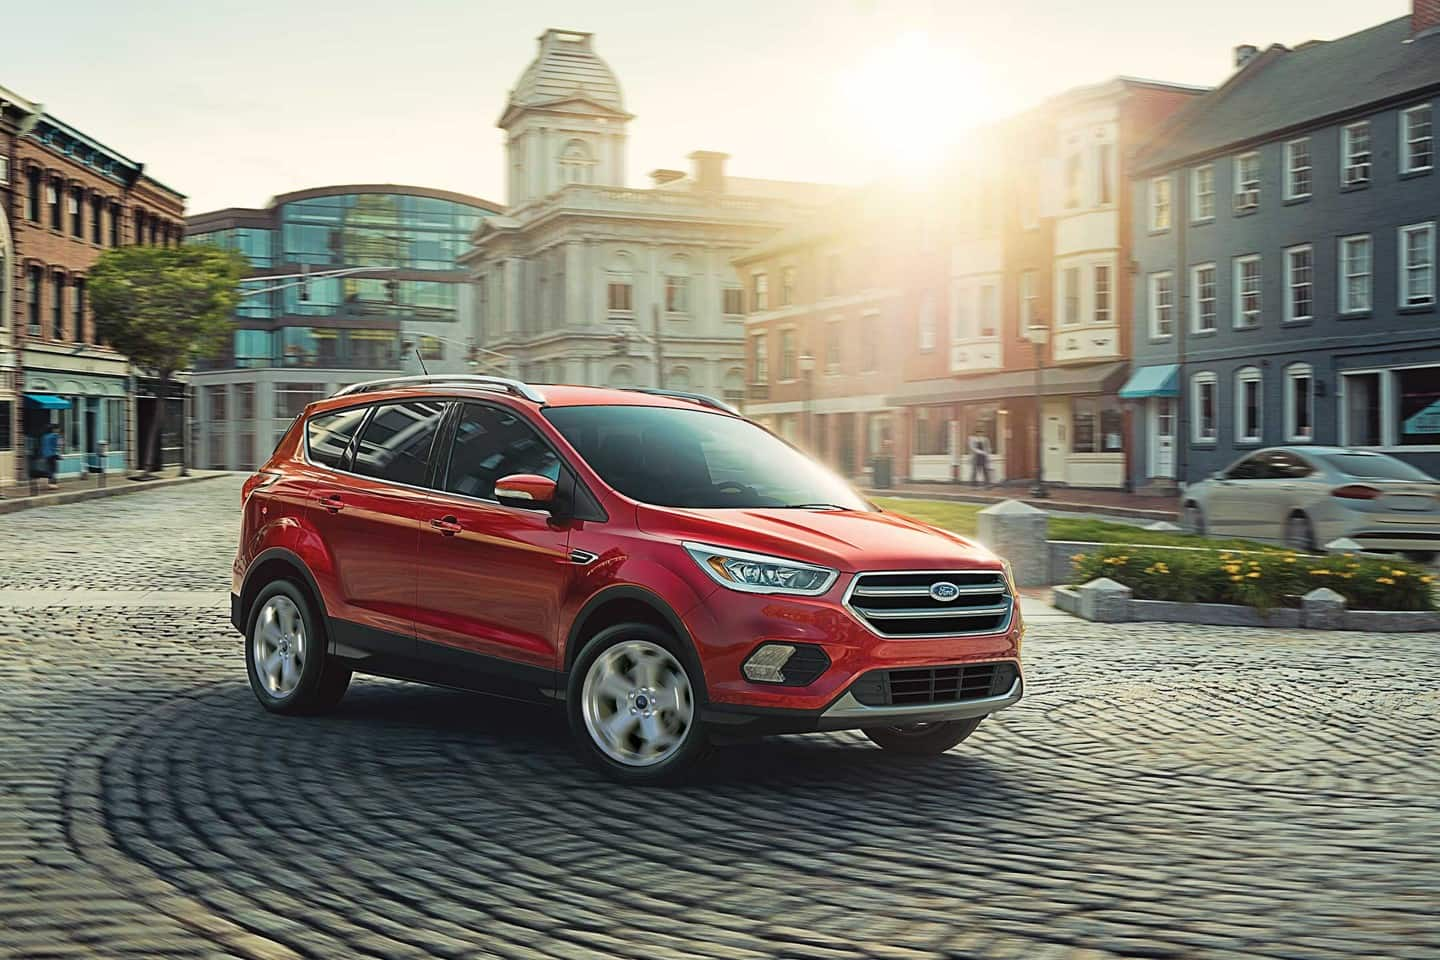 Check Out the Ford Escape!